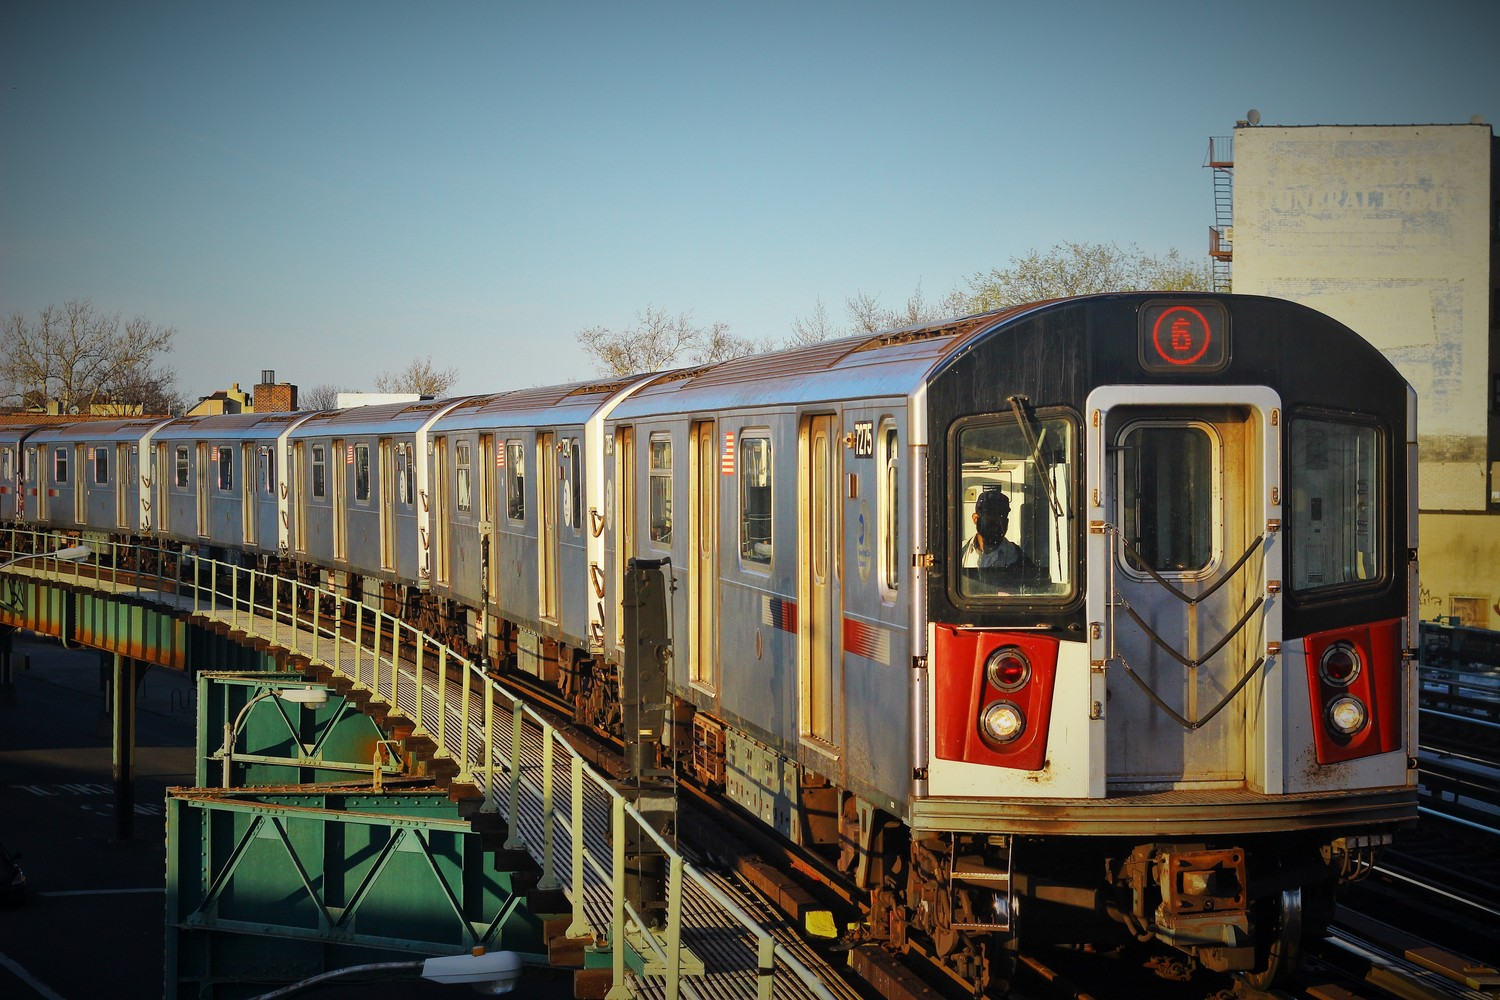 R142A Lead Motor 7275 on the 6 line | Brooklyn Bridge Bound 6 train. Consist R142-A cars